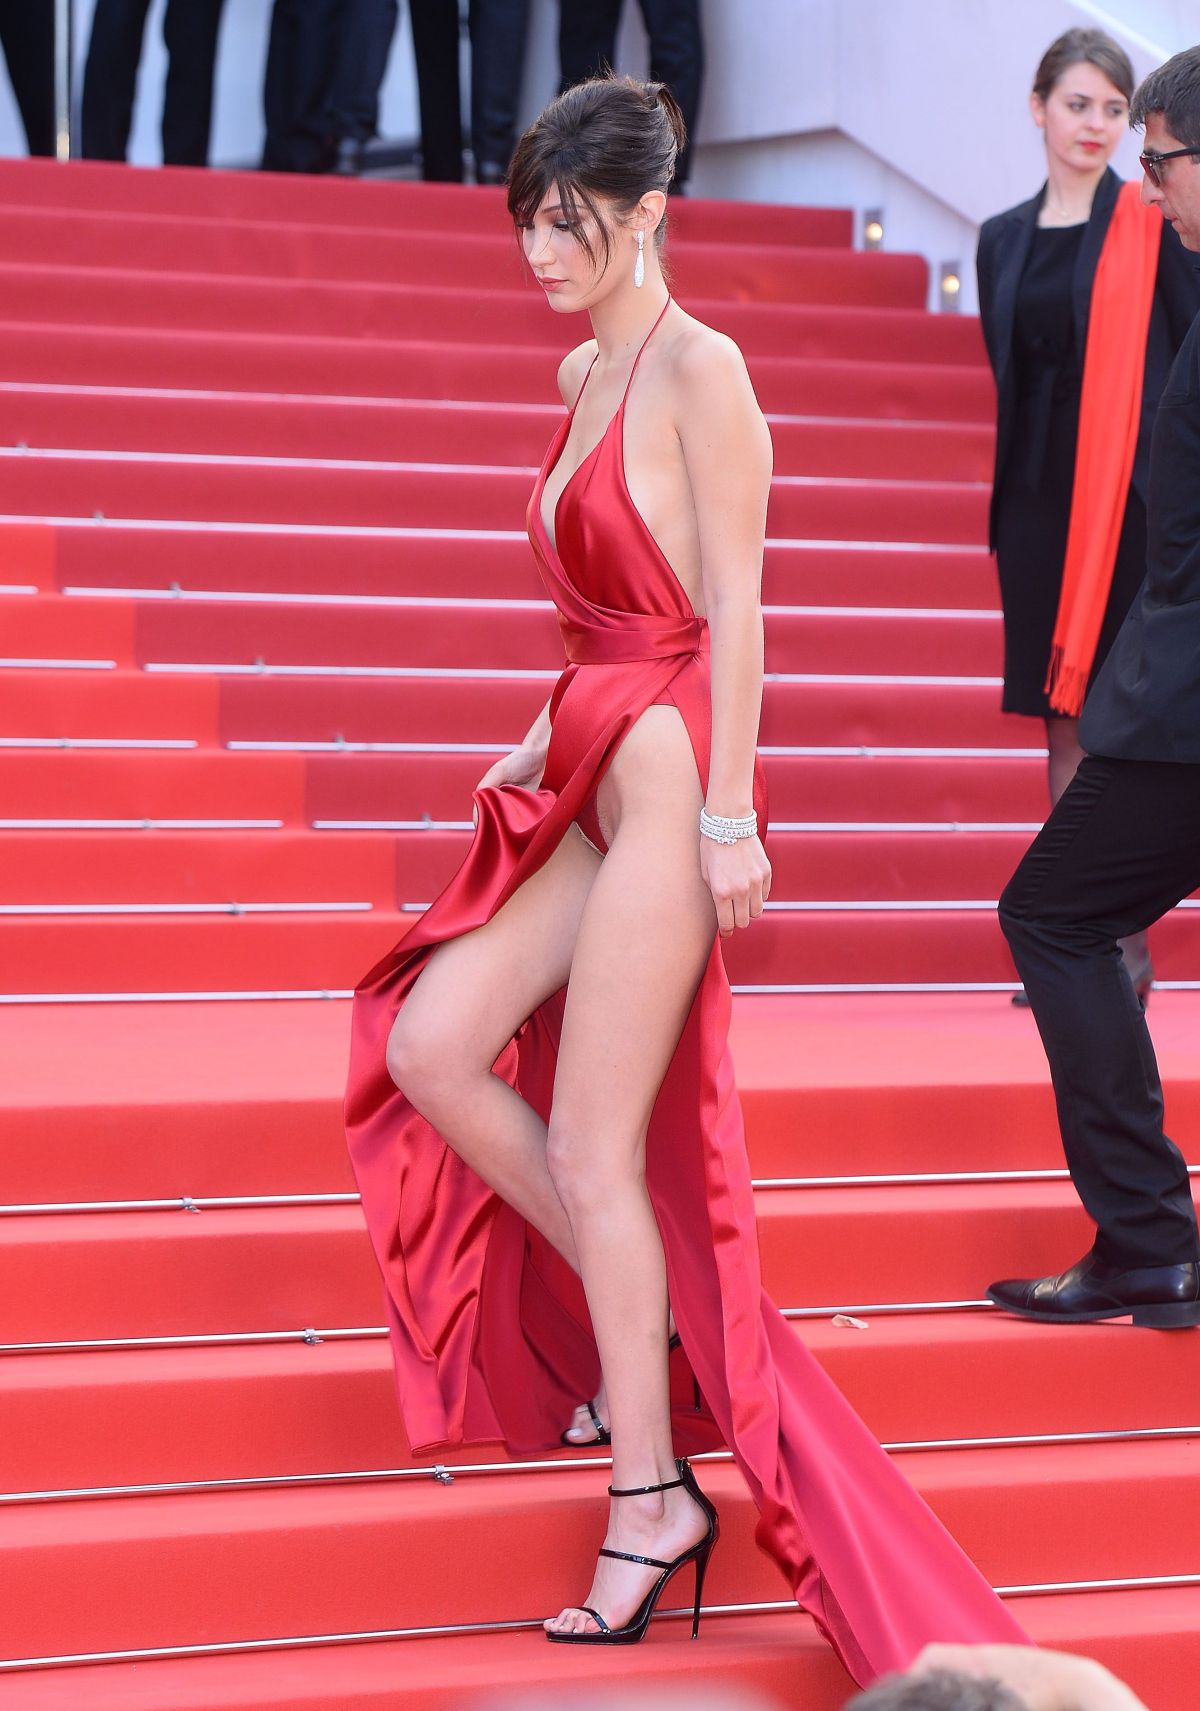 bella-hadid-at-la-fille-inconnue-premiere-at-69th-annual-cannes-fil-festival-05-18-2016_4